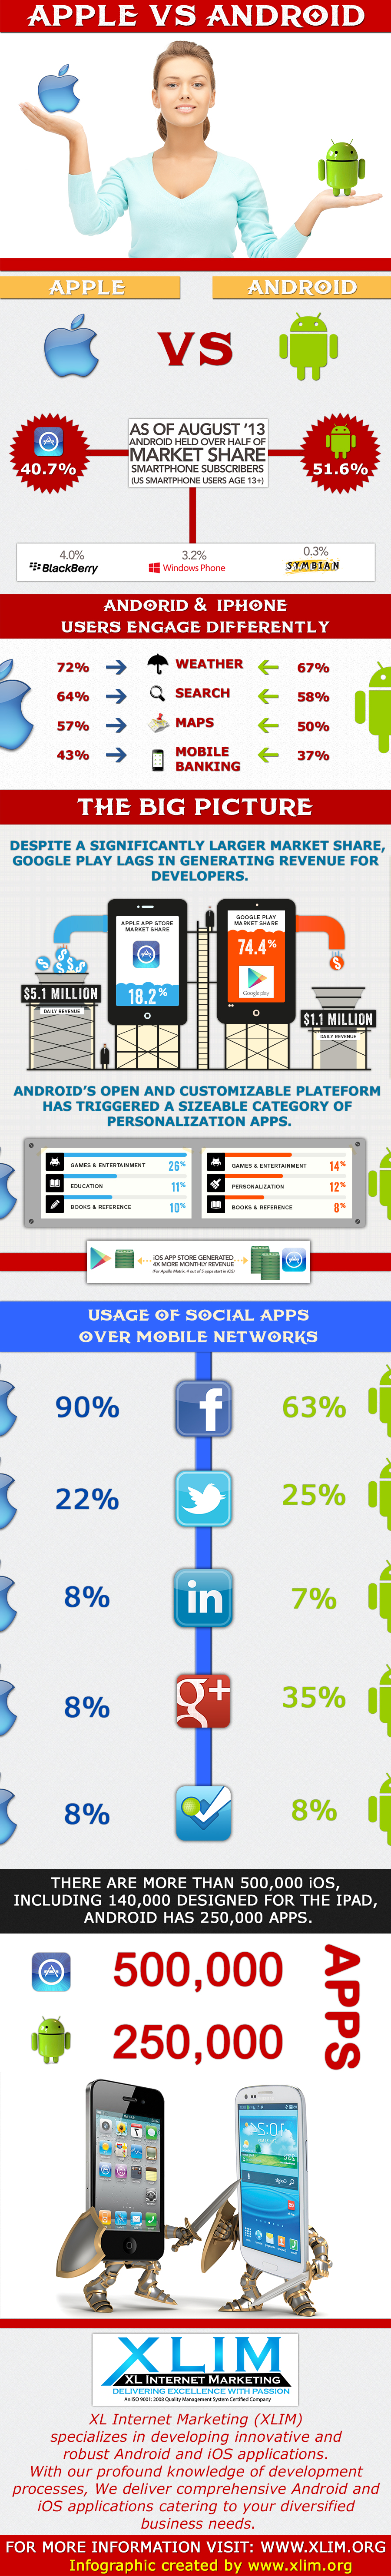 Infographic_xlim_mobile_apps